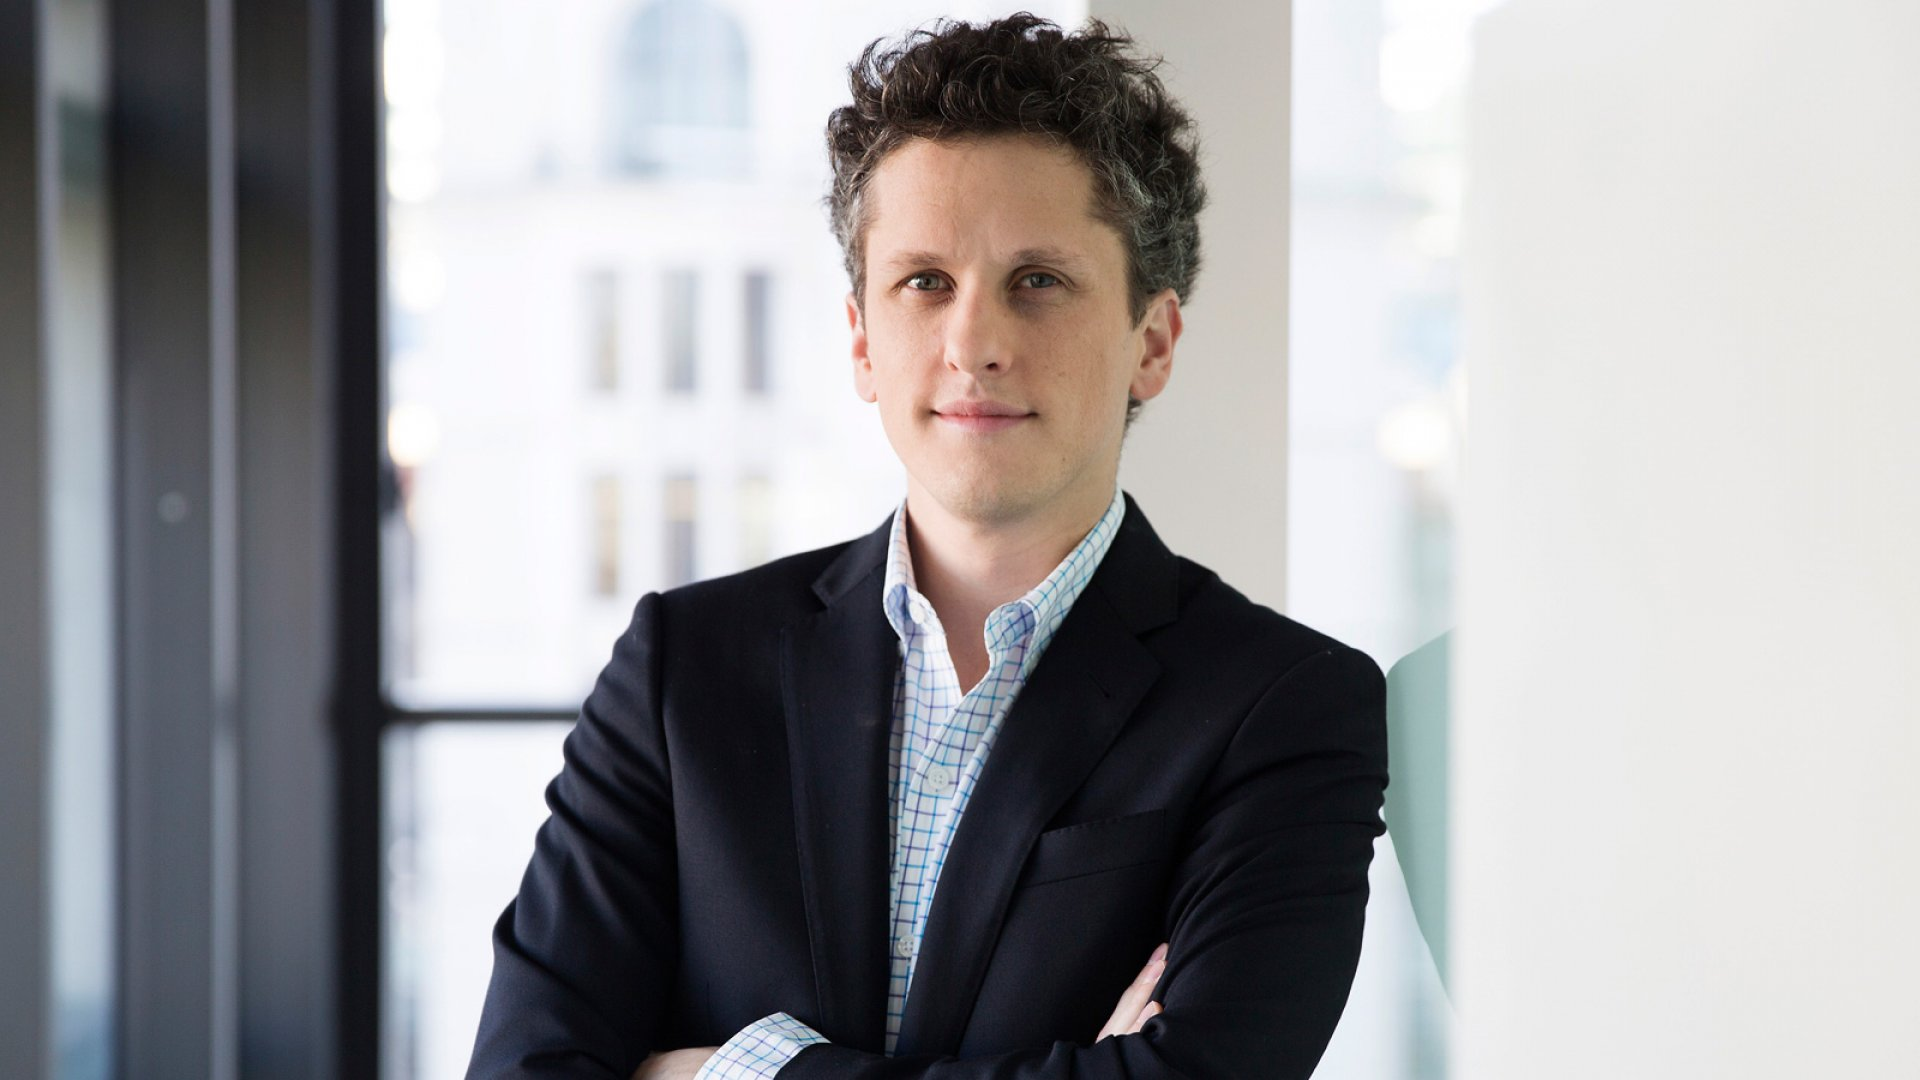 Box co-founder and CEO Aaron Levie.